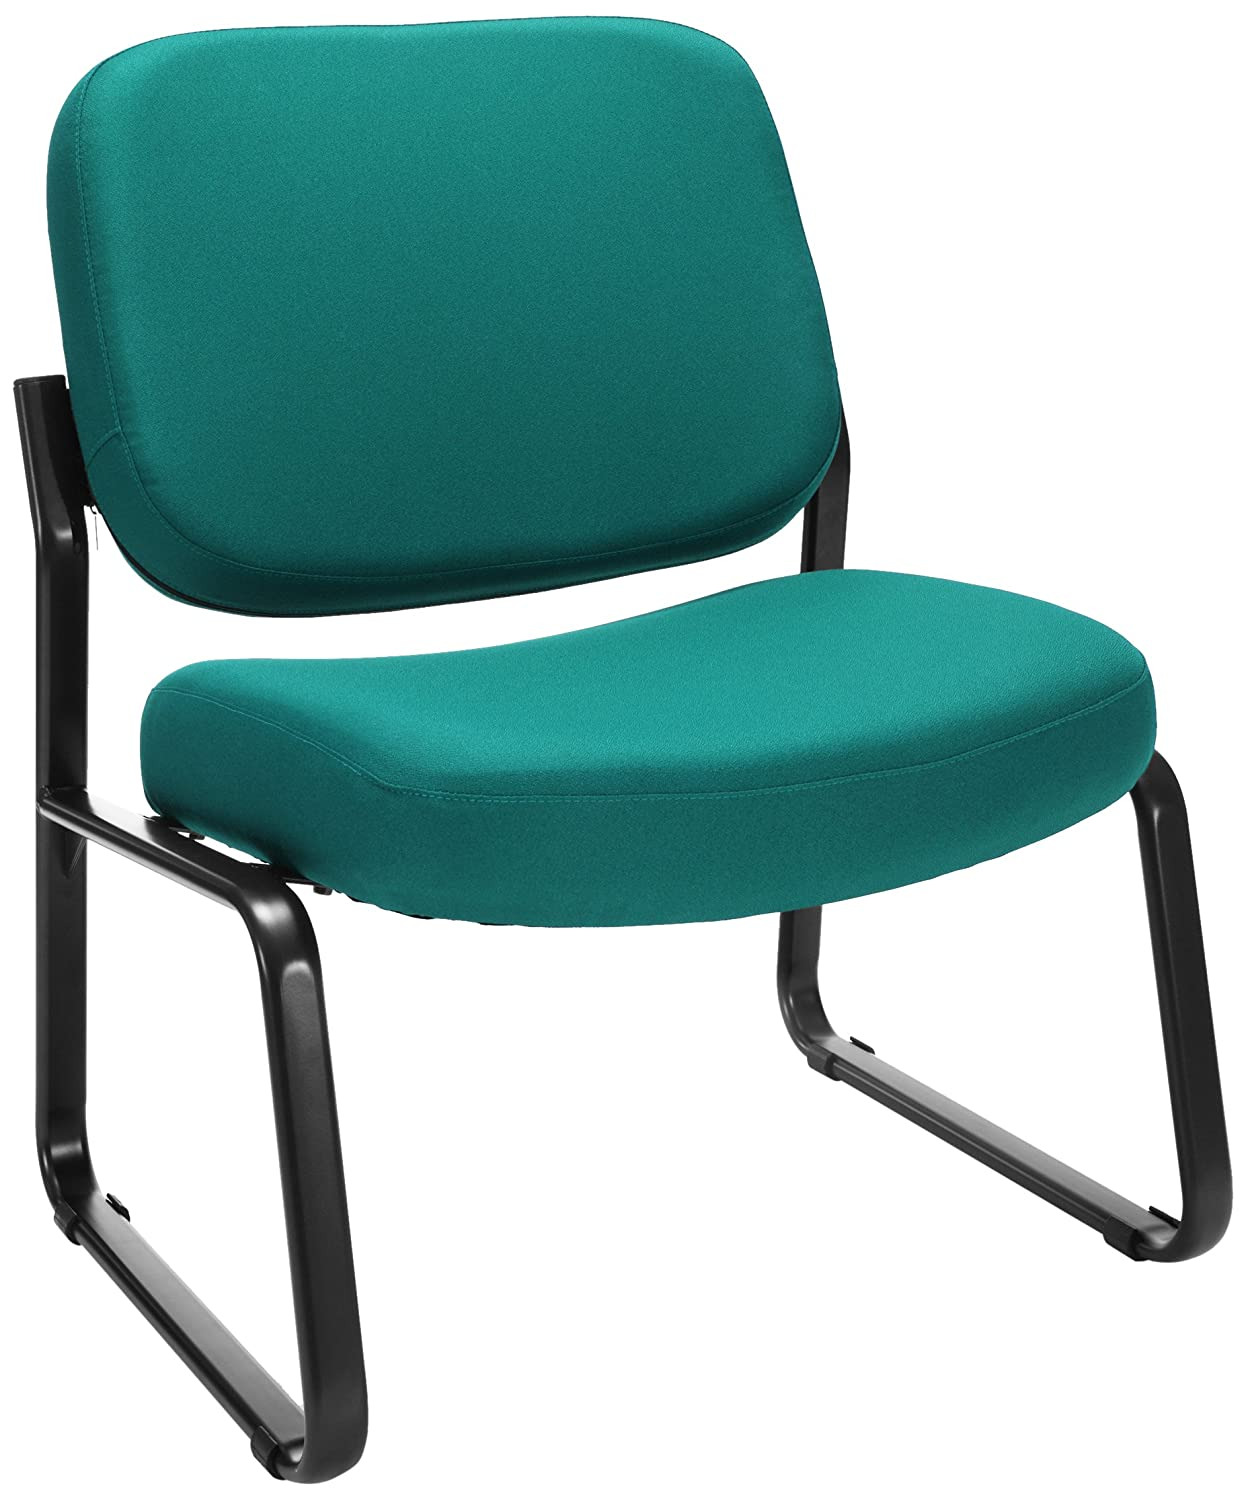 amazoncom ofm big and tall upholstered armless guest reception chair black industrial u0026 scientific